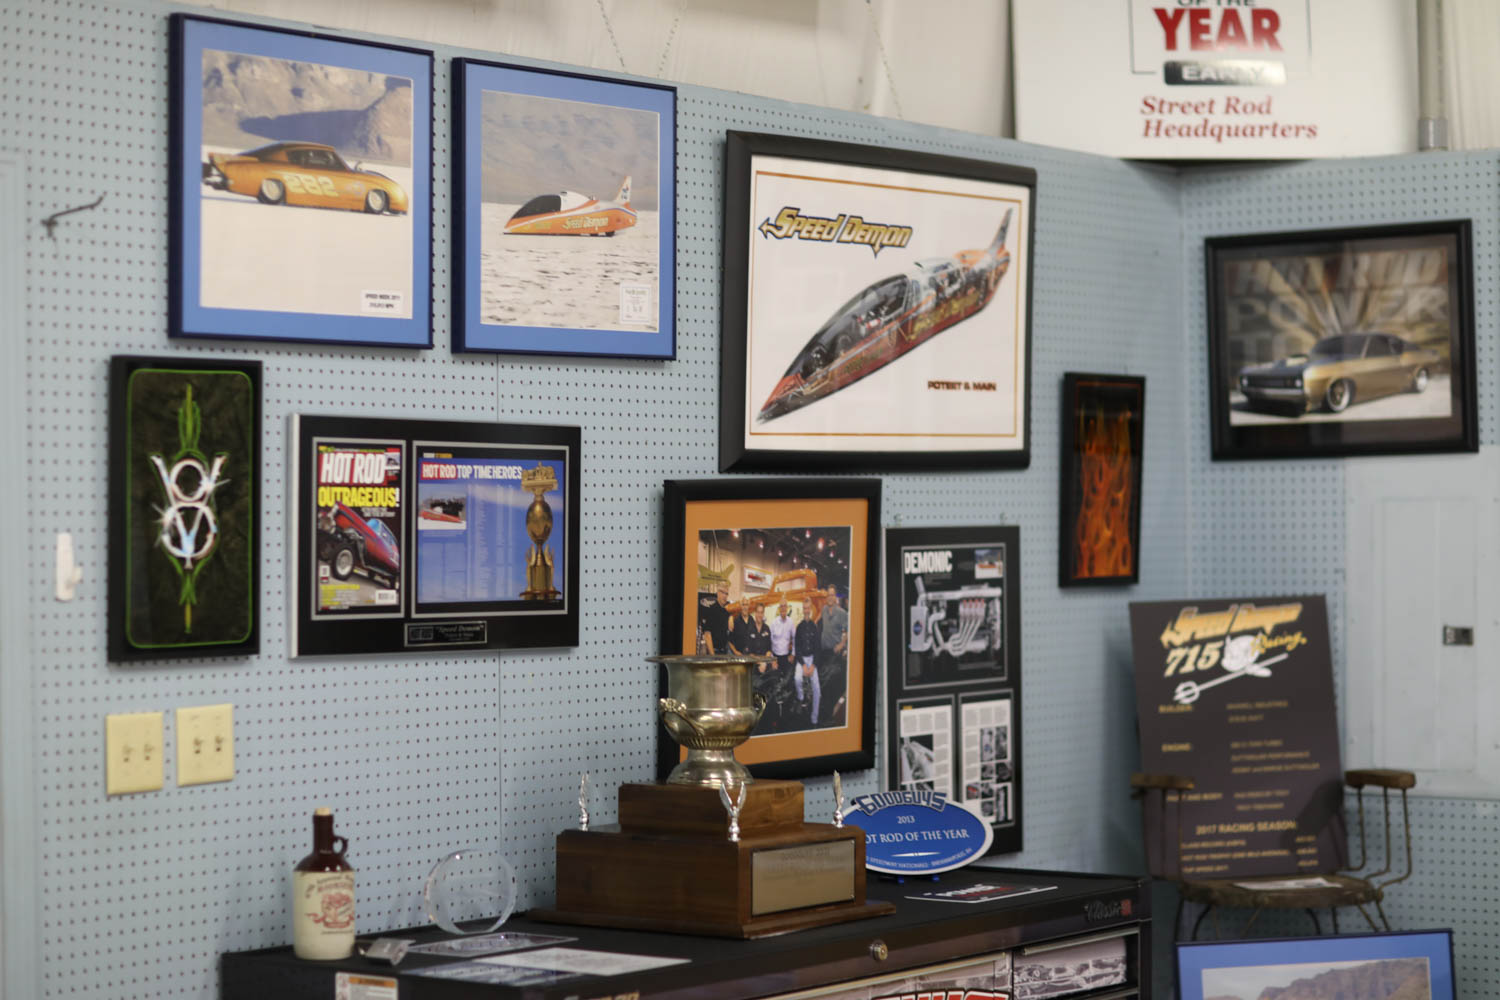 George Poteet magazine articles that featured his cars.